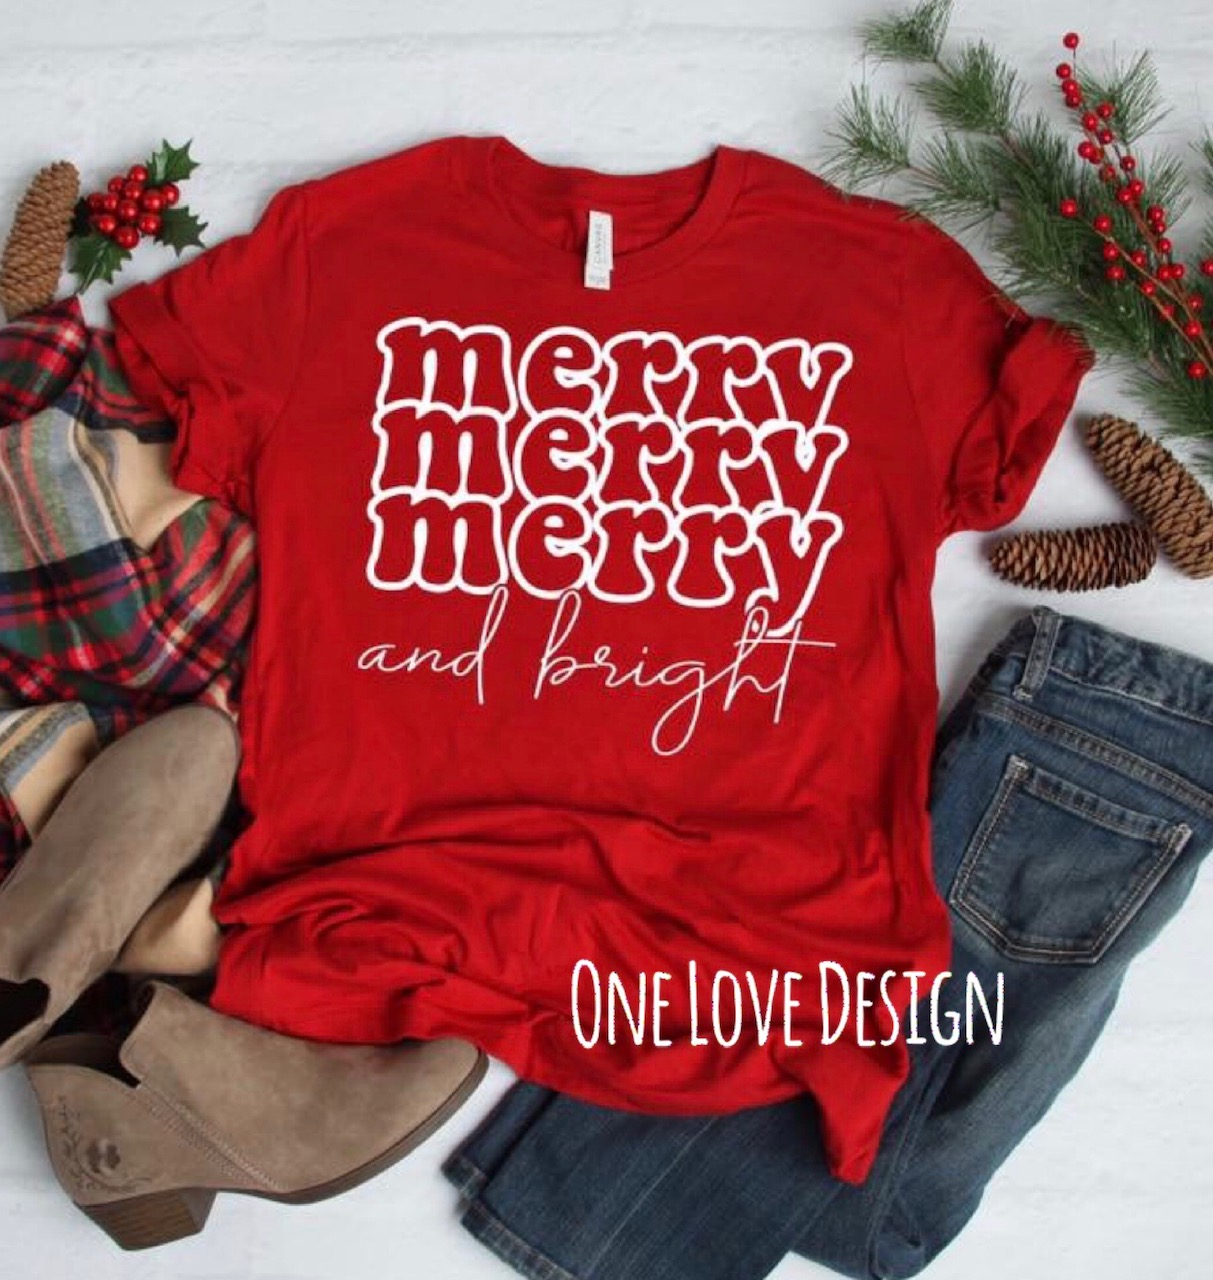 Merry Merry Merry and Bright tee